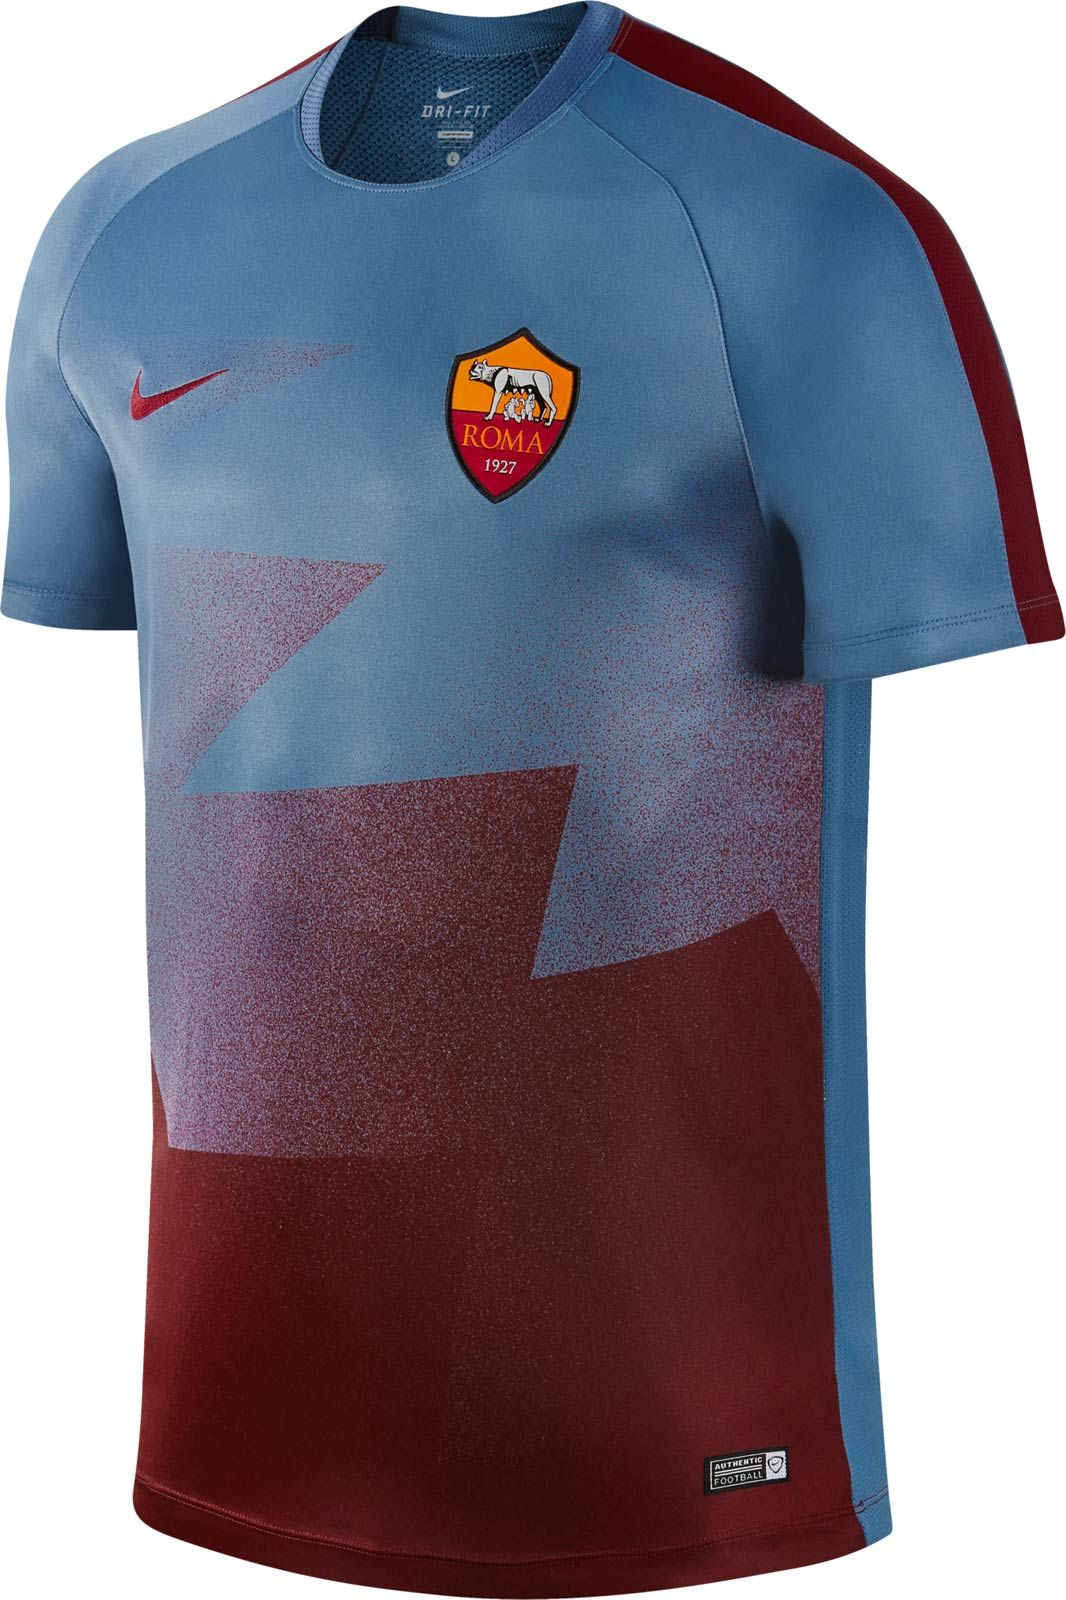 e1a7f23d5 The new AS Roma 2016 Pre-Match and Training Shirts introduce an  unprecedented look for the Italian team, combining blue with dark red.